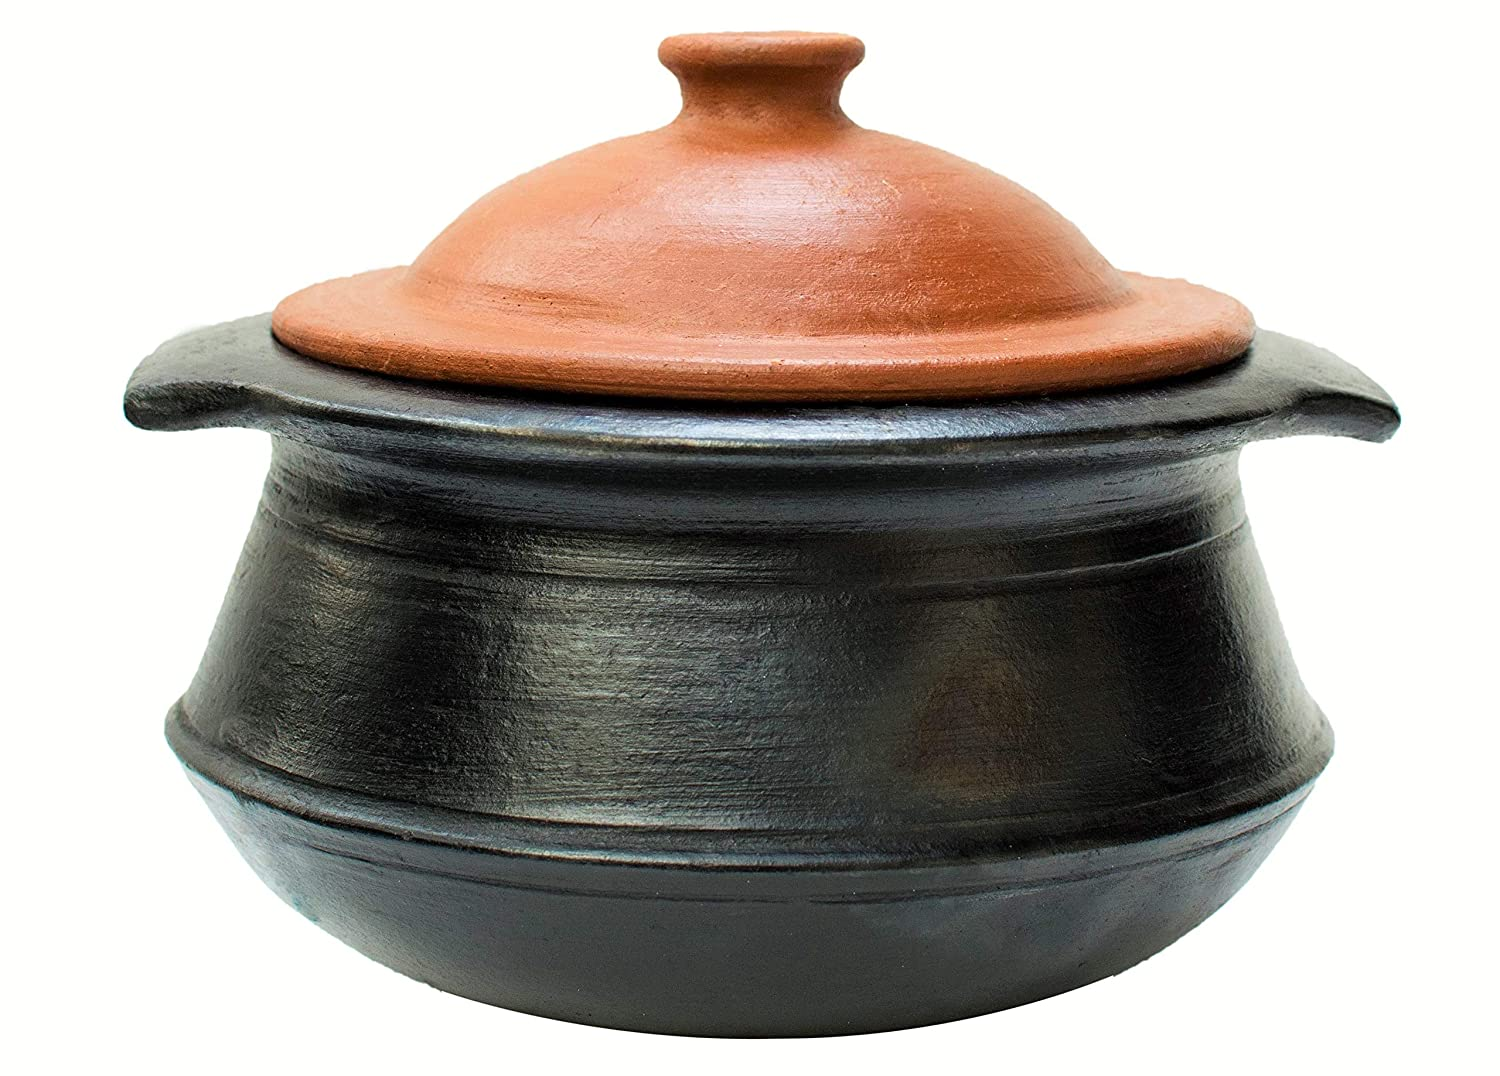 clay pot cooking buy online Buy Craftsman India Online Earthen Clay Pot for Cooking and